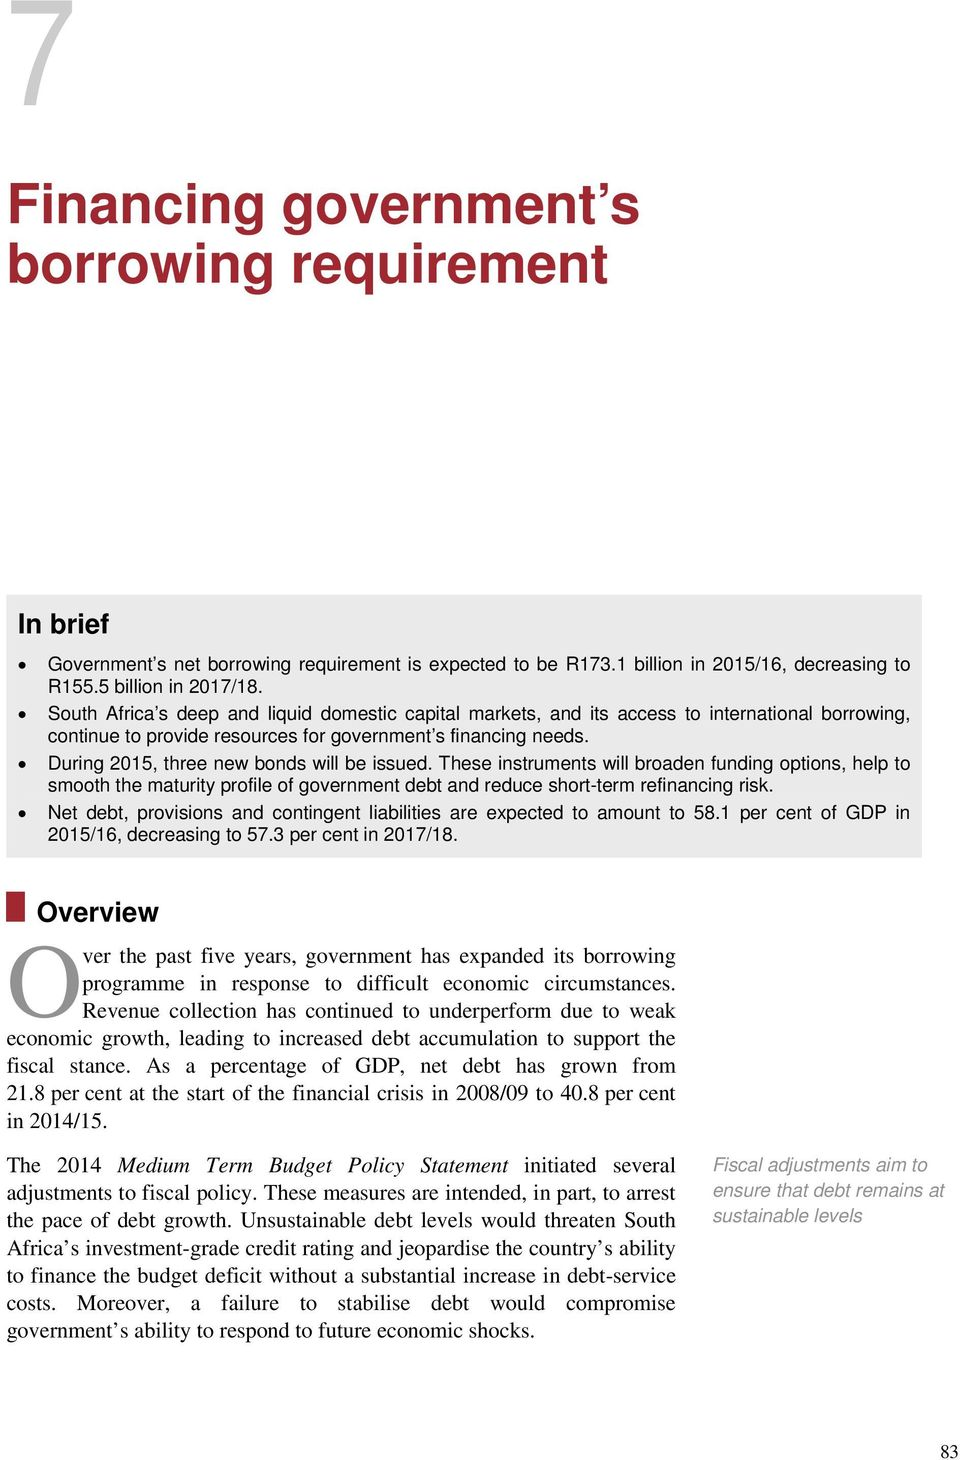 During 2015, three new bonds will be issued. These instruments will broaden funding options, help to smooth the maturity profile of government debt and reduce short-term refinancing risk.